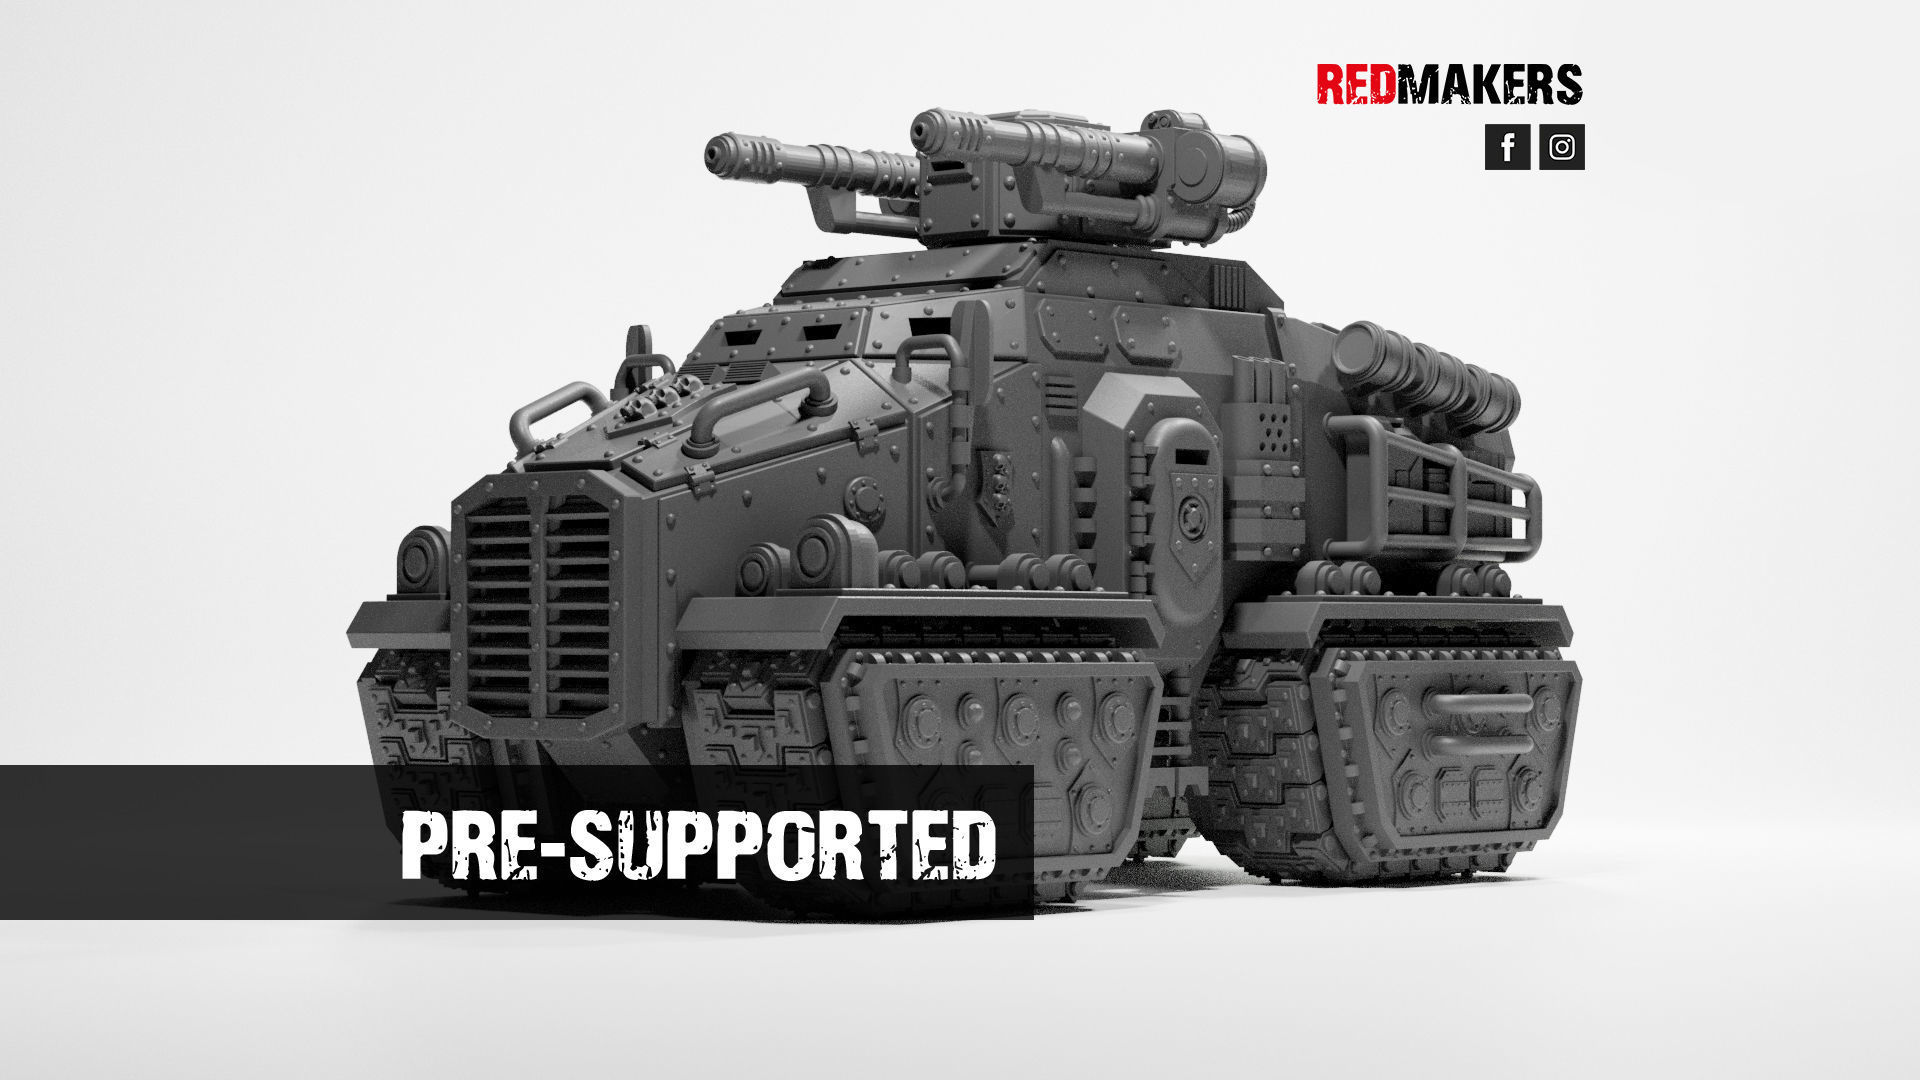 Imperial military force Heavily armored vehicle